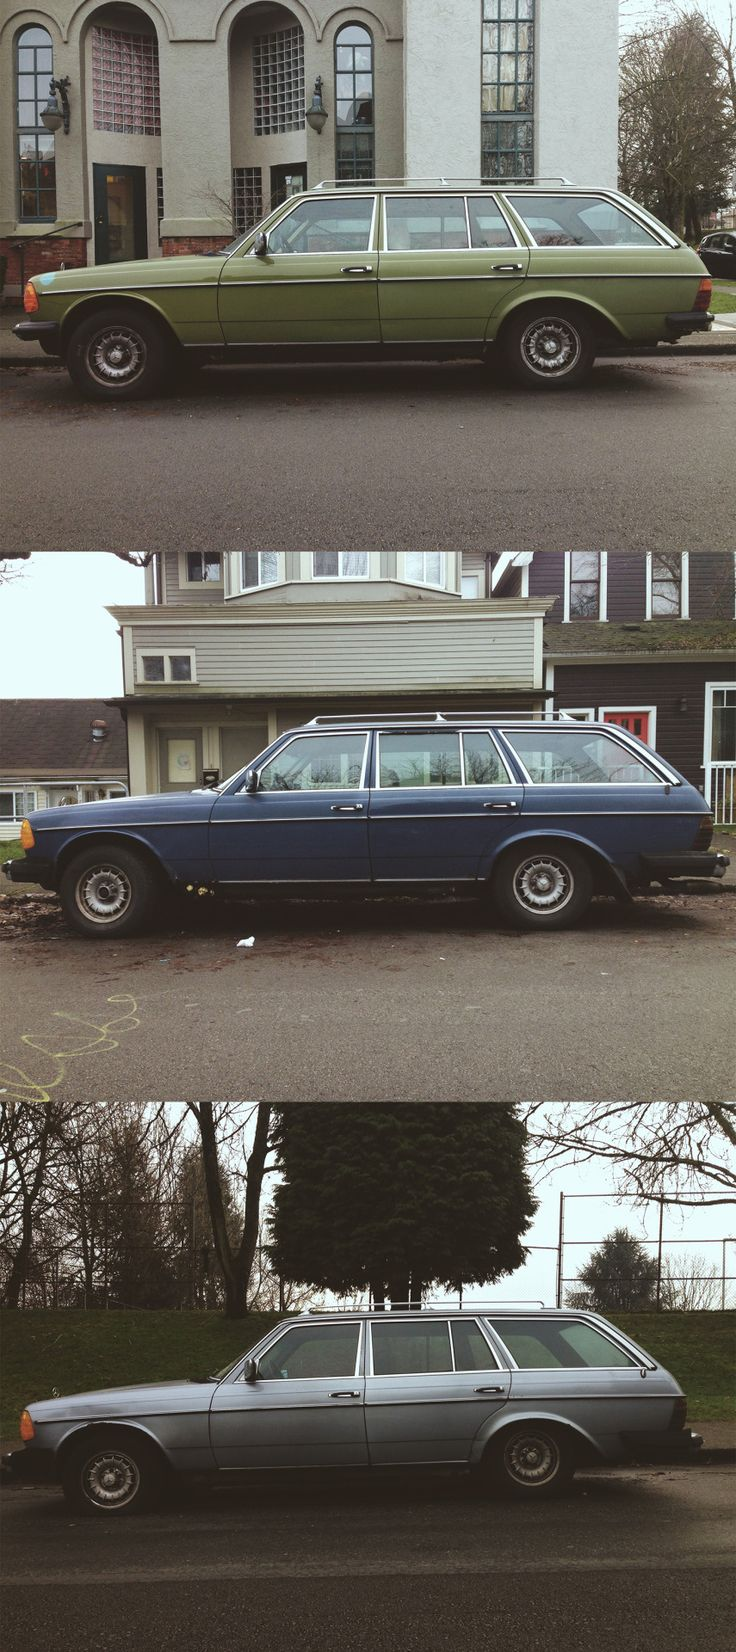 Wagonation - Where Station Wagons Still Roam Free : Photo